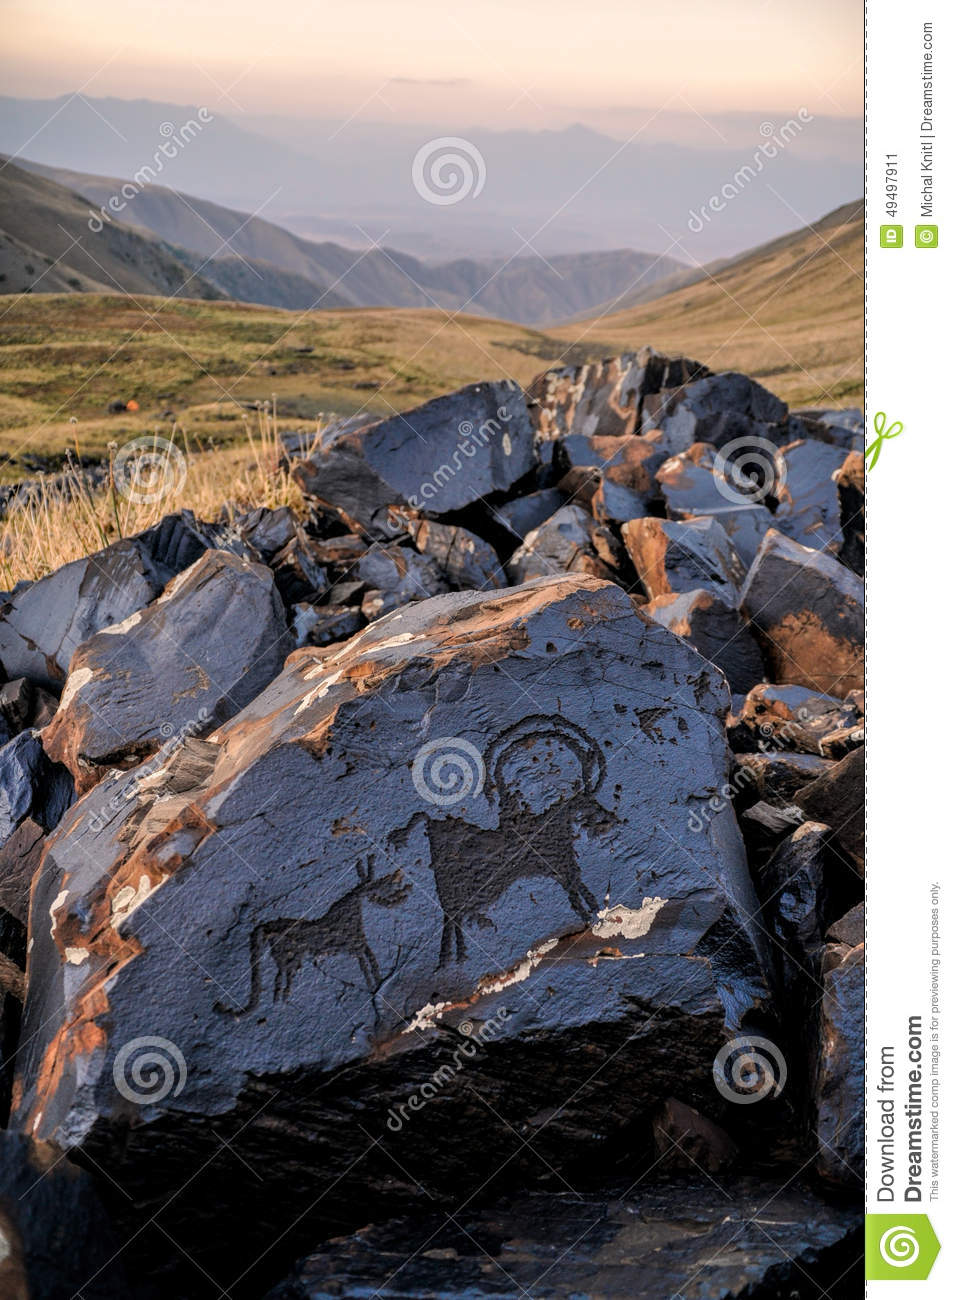 Ancient Pictograms Stock Photo Image 49497911